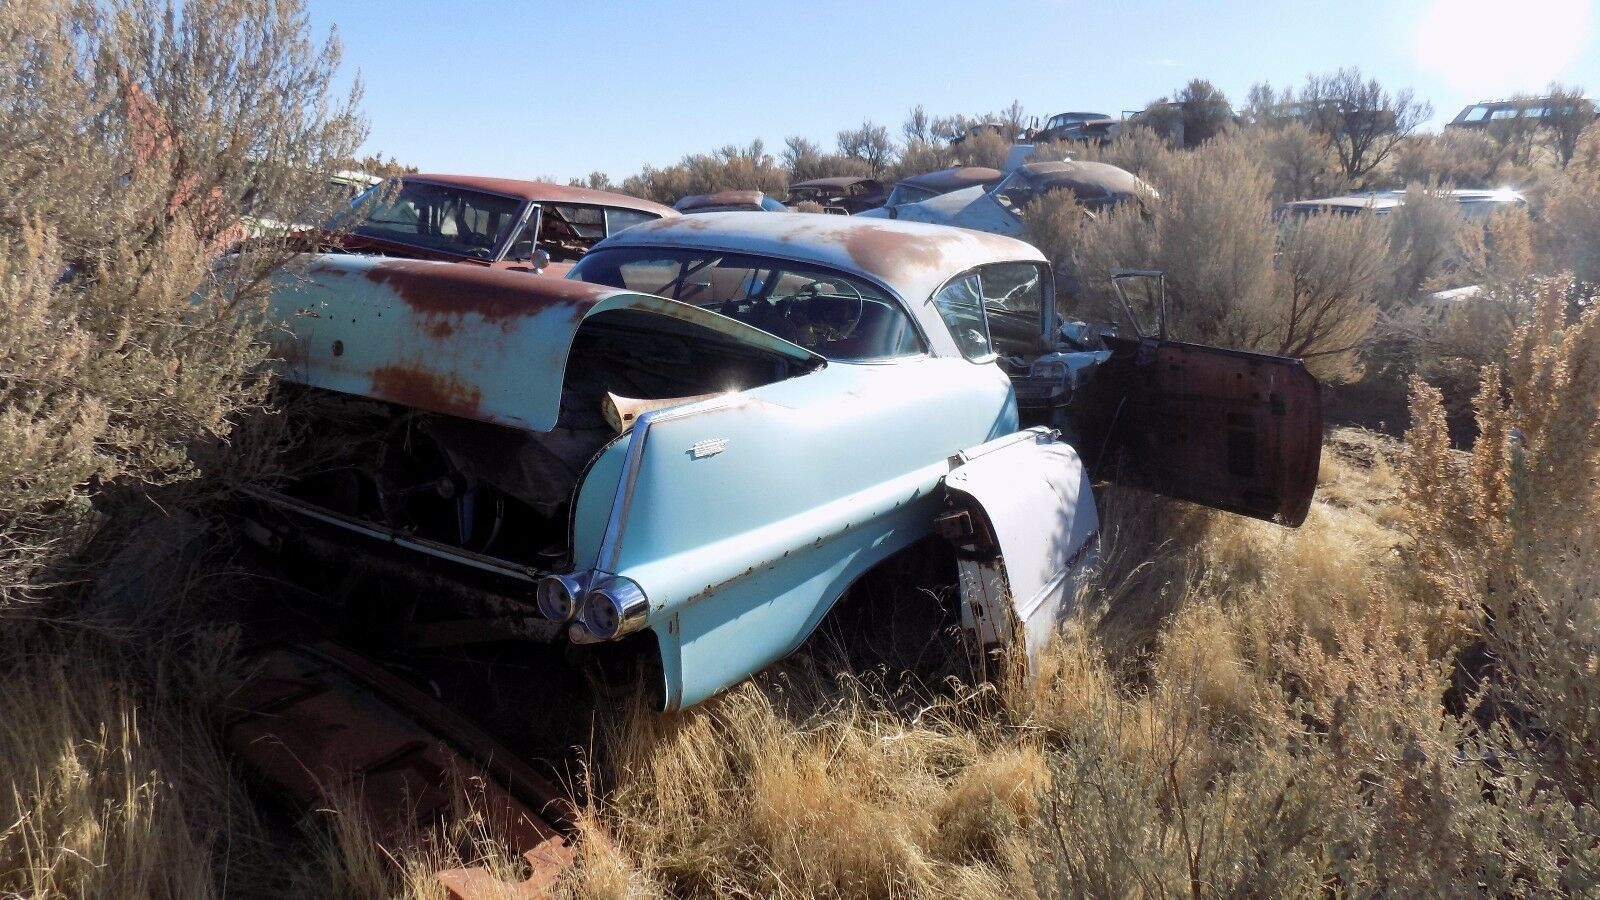 Used 1956 Cadillac Deville Exterior Parts For Sale 1954 Sedan 1955 Coupe 2 Door 1 4 Scoop Molding Nice Dry Desert Chrome